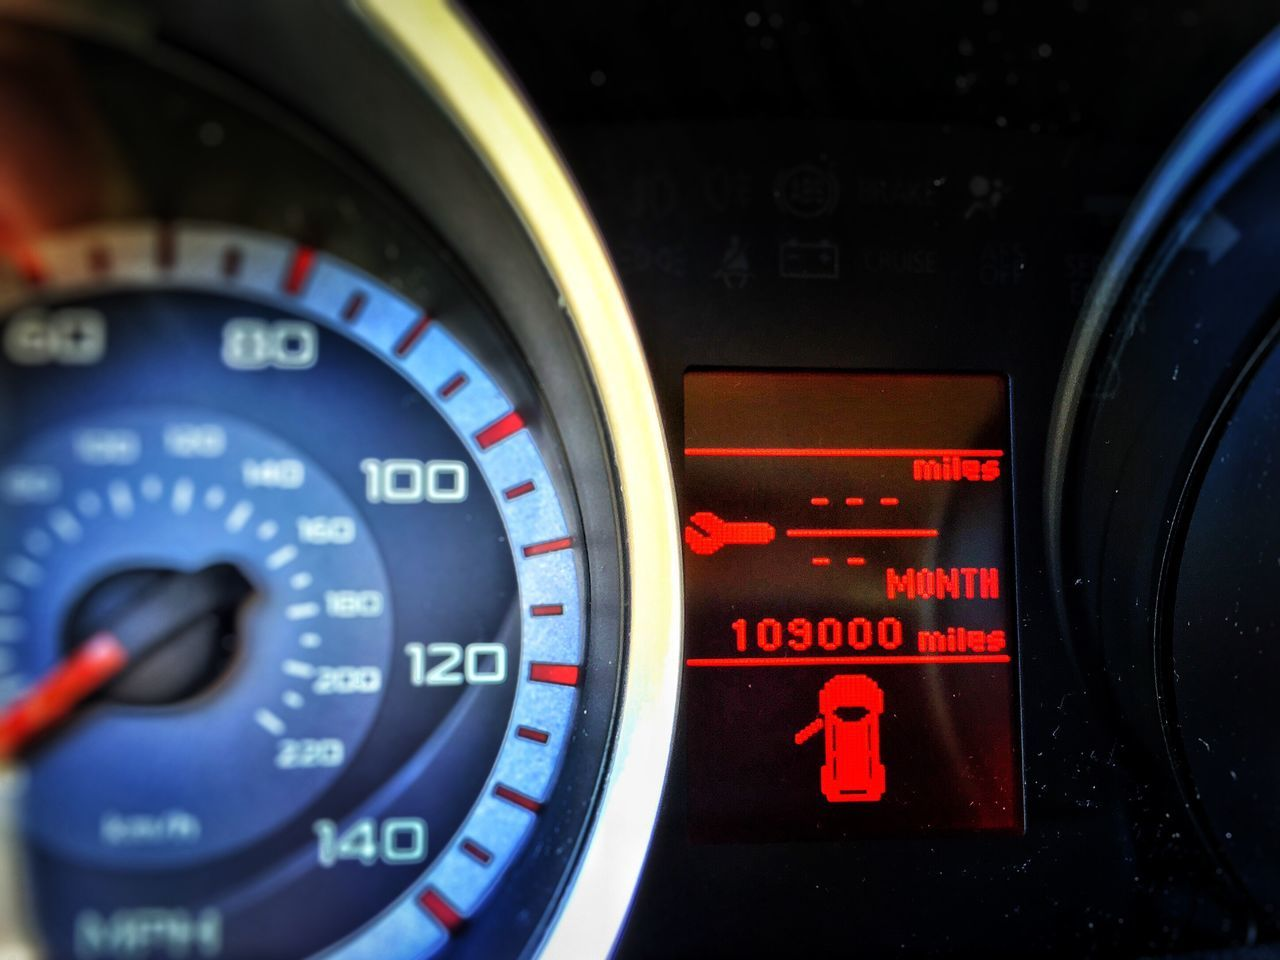 Number Speedometer Dashboard Meter - Instrument Of Measurement Gauge Transportation Car Land Vehicle Close-up Vehicle Interior Mode Of Transport Car Interior No People Speed Illuminated Technology Steering Wheel Control Panel